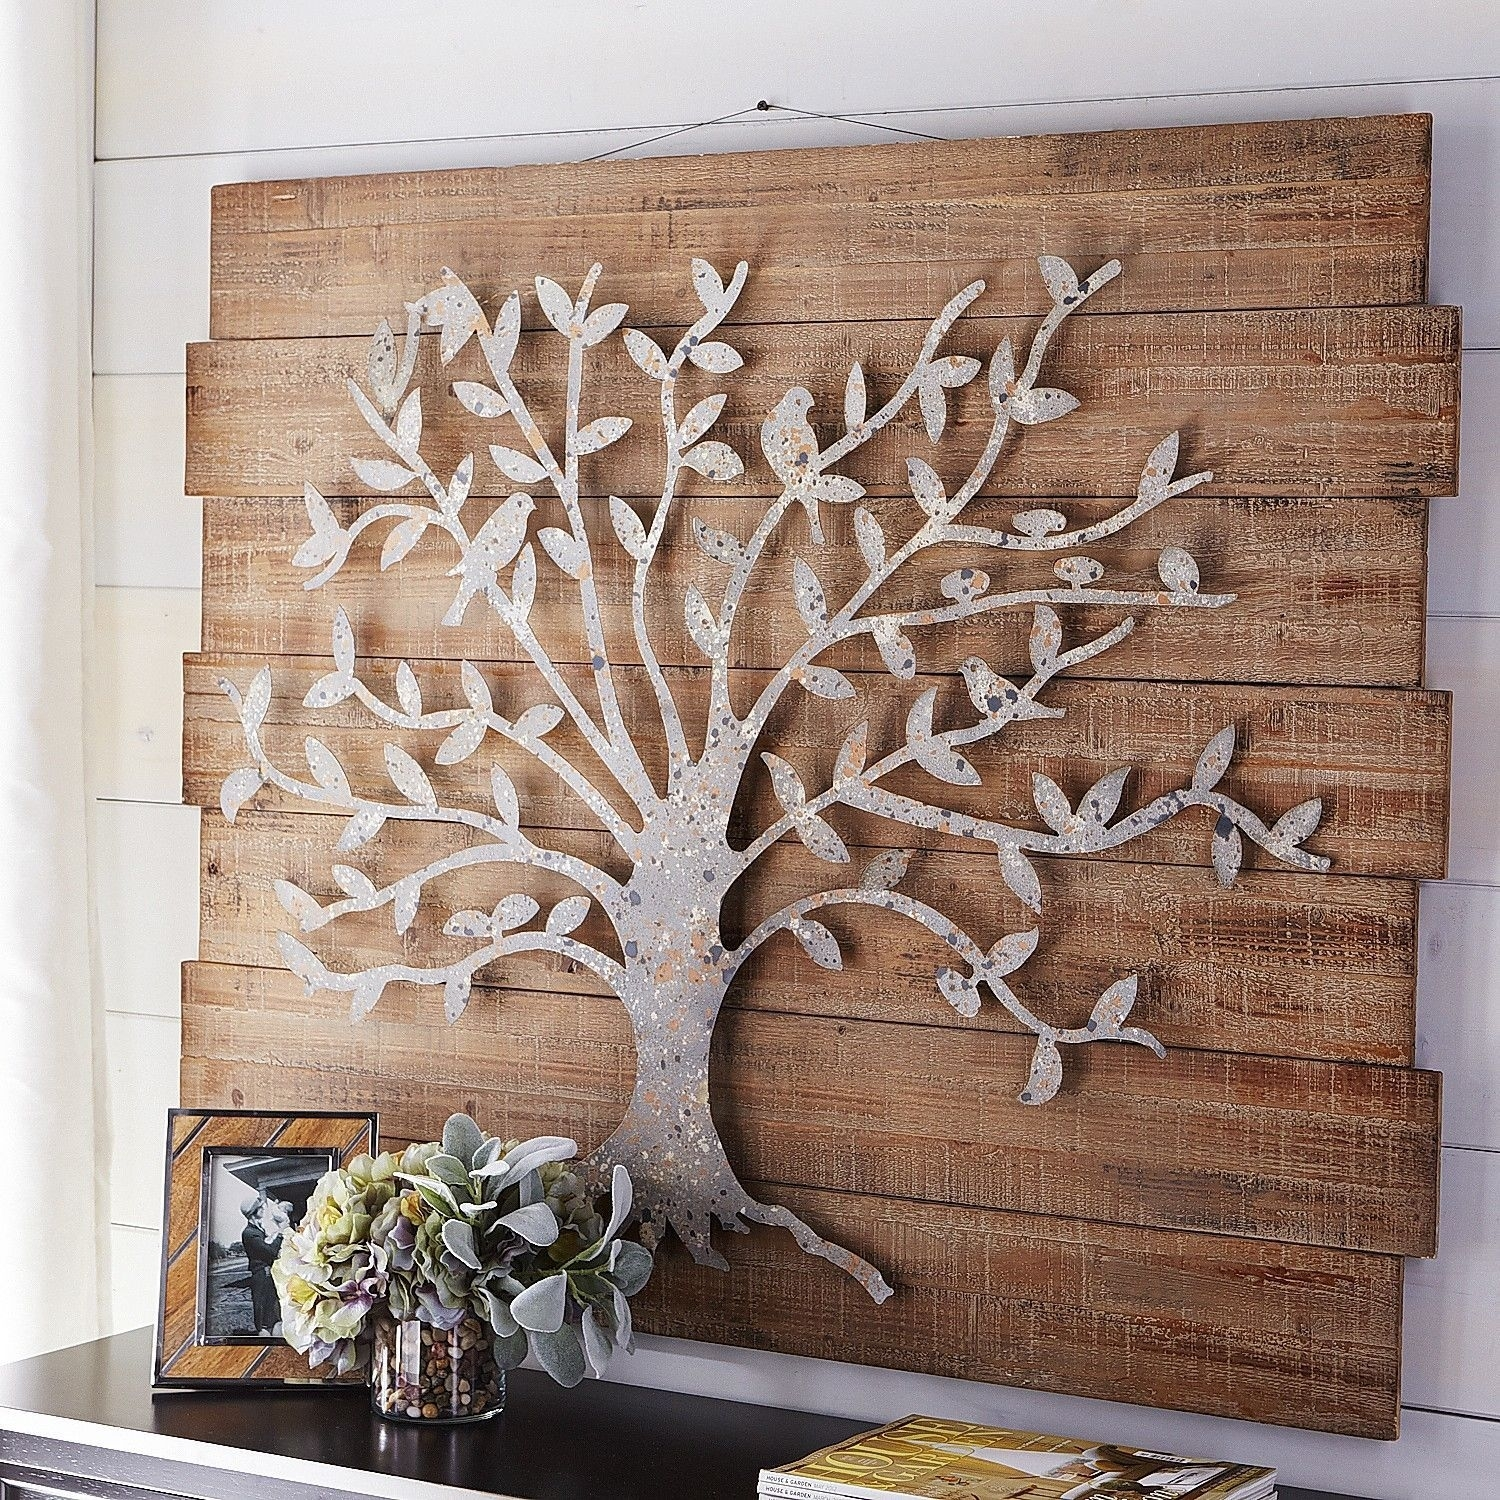 Timeless Tree Wall Decor | Pier 1 Imports … | Metal Work | Pinte… Throughout Most Current Pier 1 Wall Art (Gallery 15 of 20)